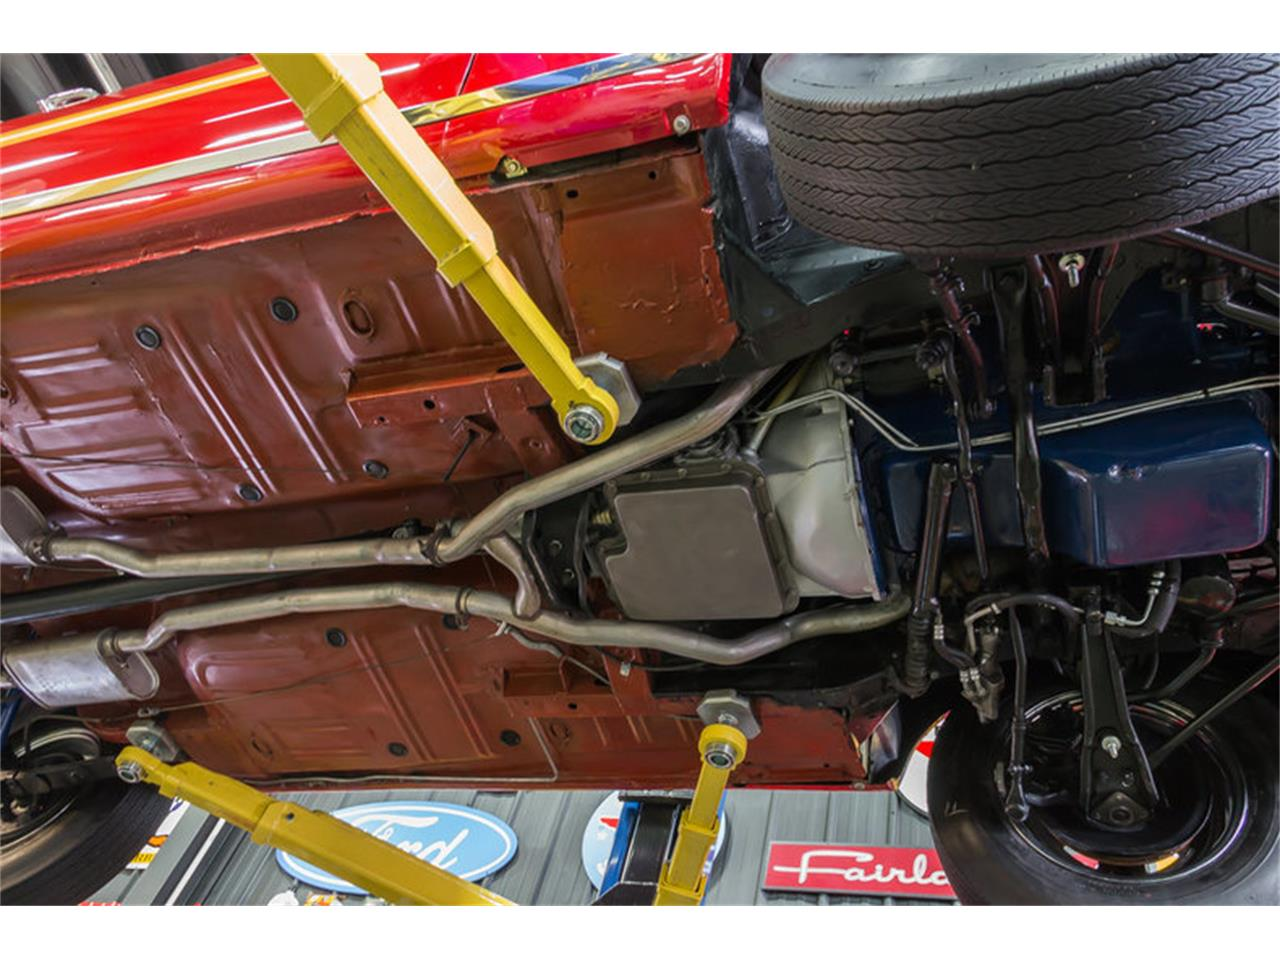 Large Picture of '69 Ford Mustang Mach 1 S Code - $59,900.00 - IS3G